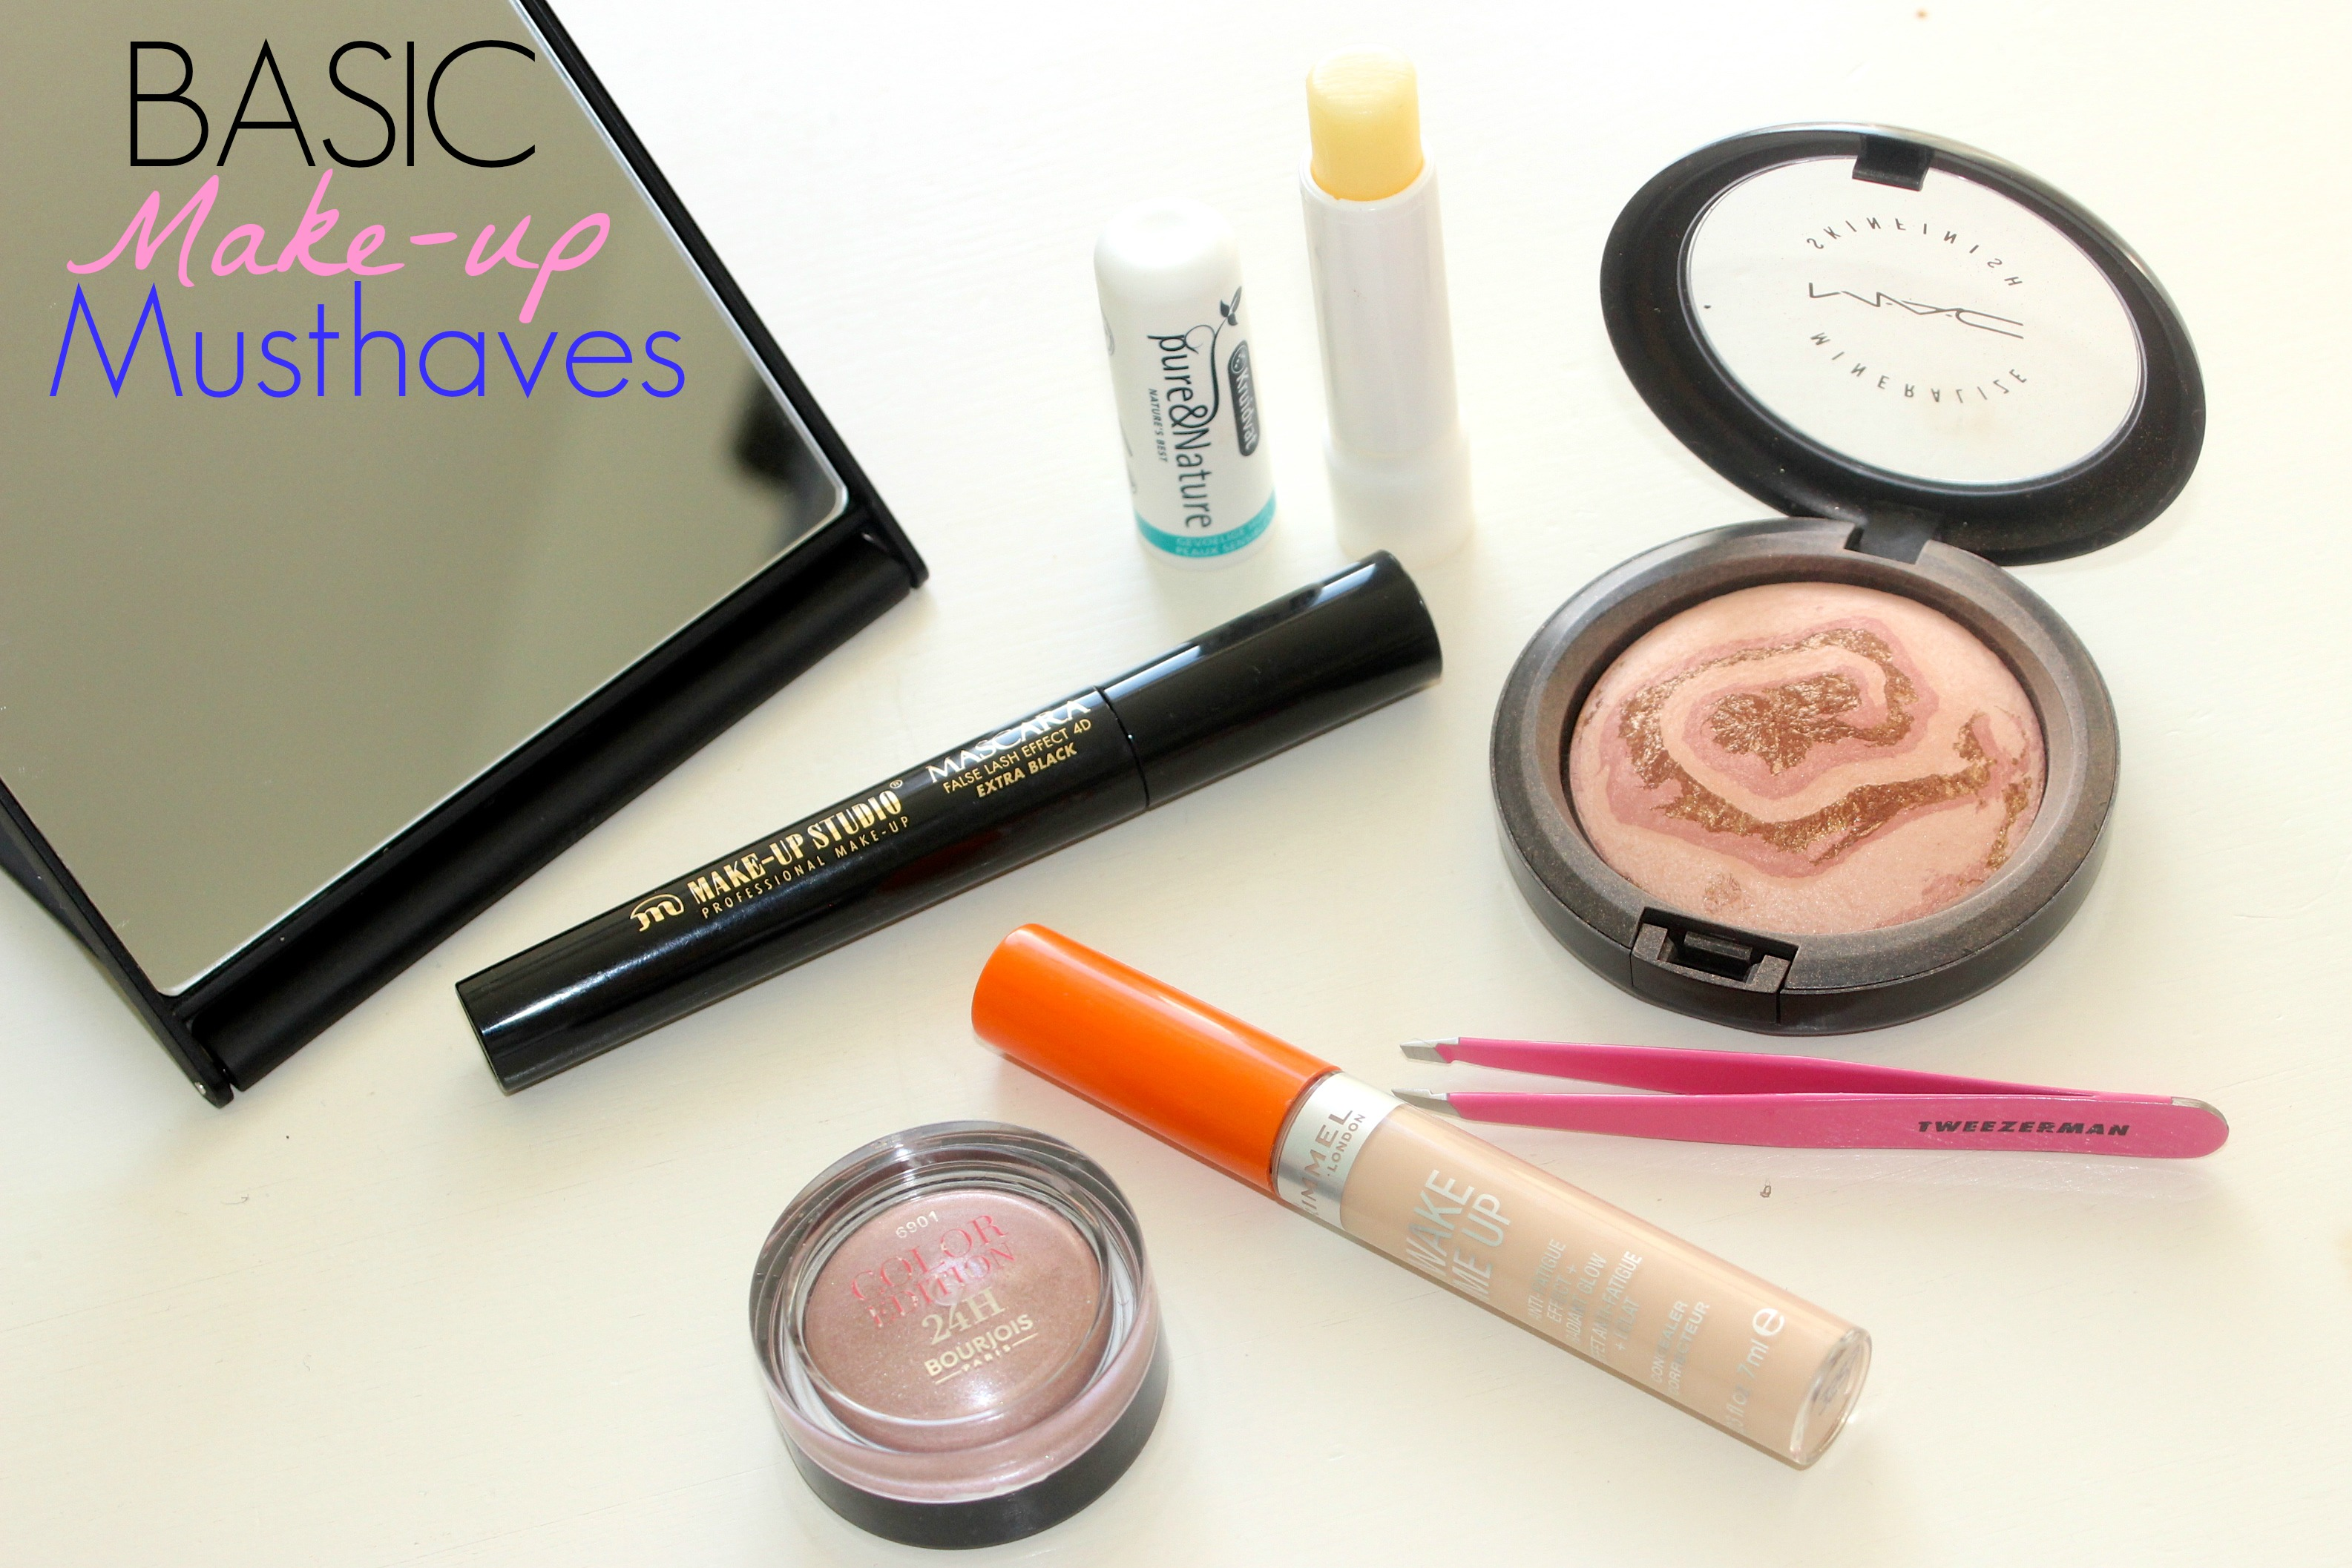 Basic make-up musthaves cover